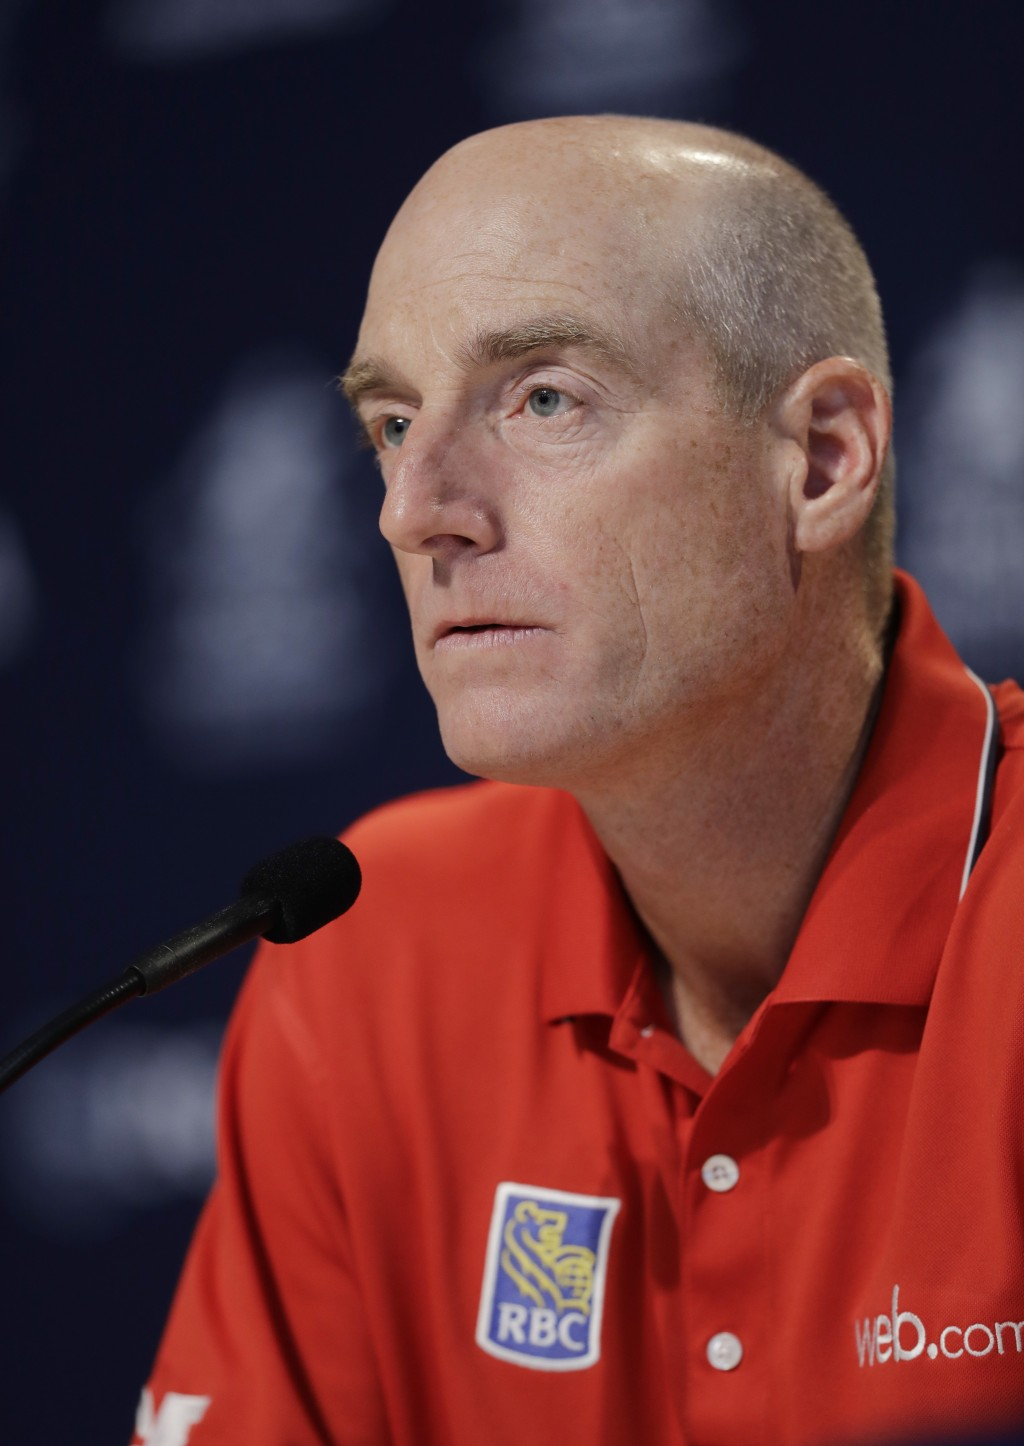 Jim Furyk responds to a question during a news conference at the PGA Championship golf tournament at Bellerive Country Club, Wednesday, Aug. 8, 2018,